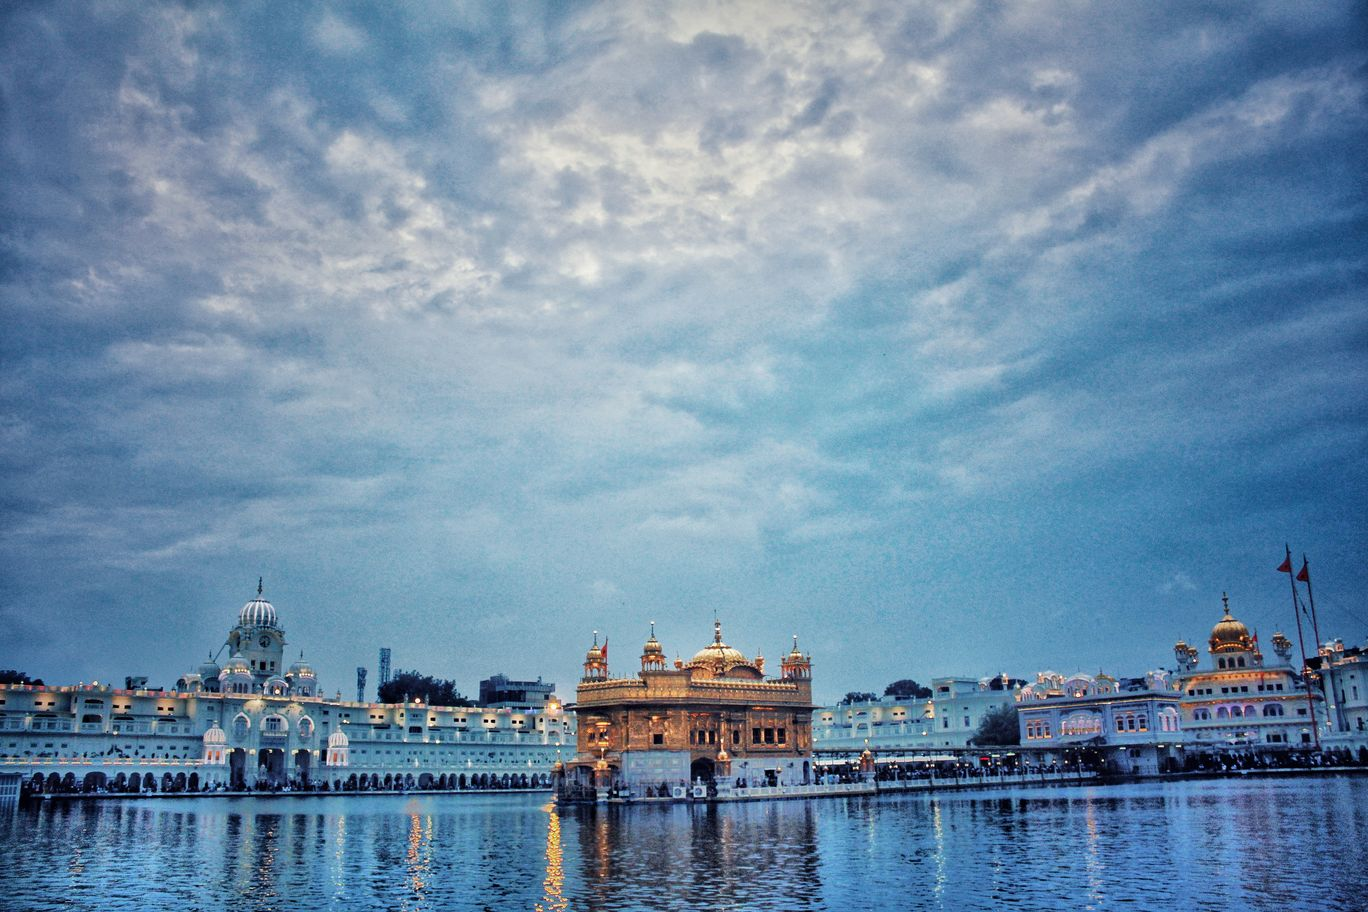 Photo of Golden Temple Amritsar - Tour Packages - Sightseeings By aditya verma